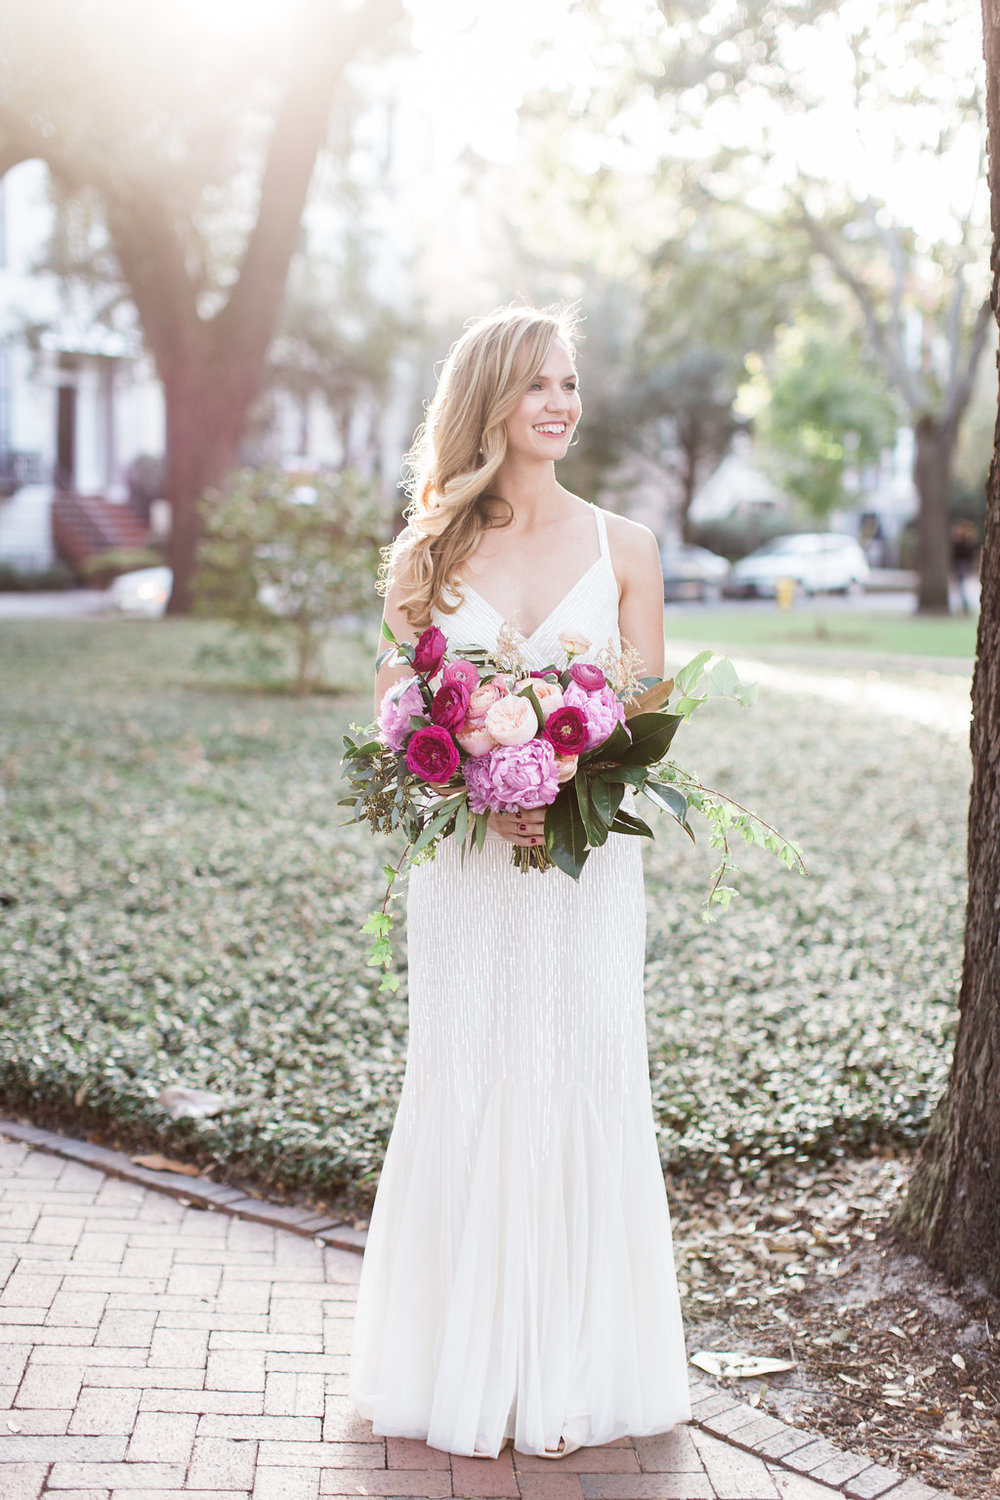 helen-tom-apt-b-photography-savannah-weddings-ivory-and-beau-bridal-boutique-savannah-bridal-boutique-savannah-florist-georgia-state-railroad-museum-wedding-colorful-rustic-wedding-savannah-florist-17.JPG